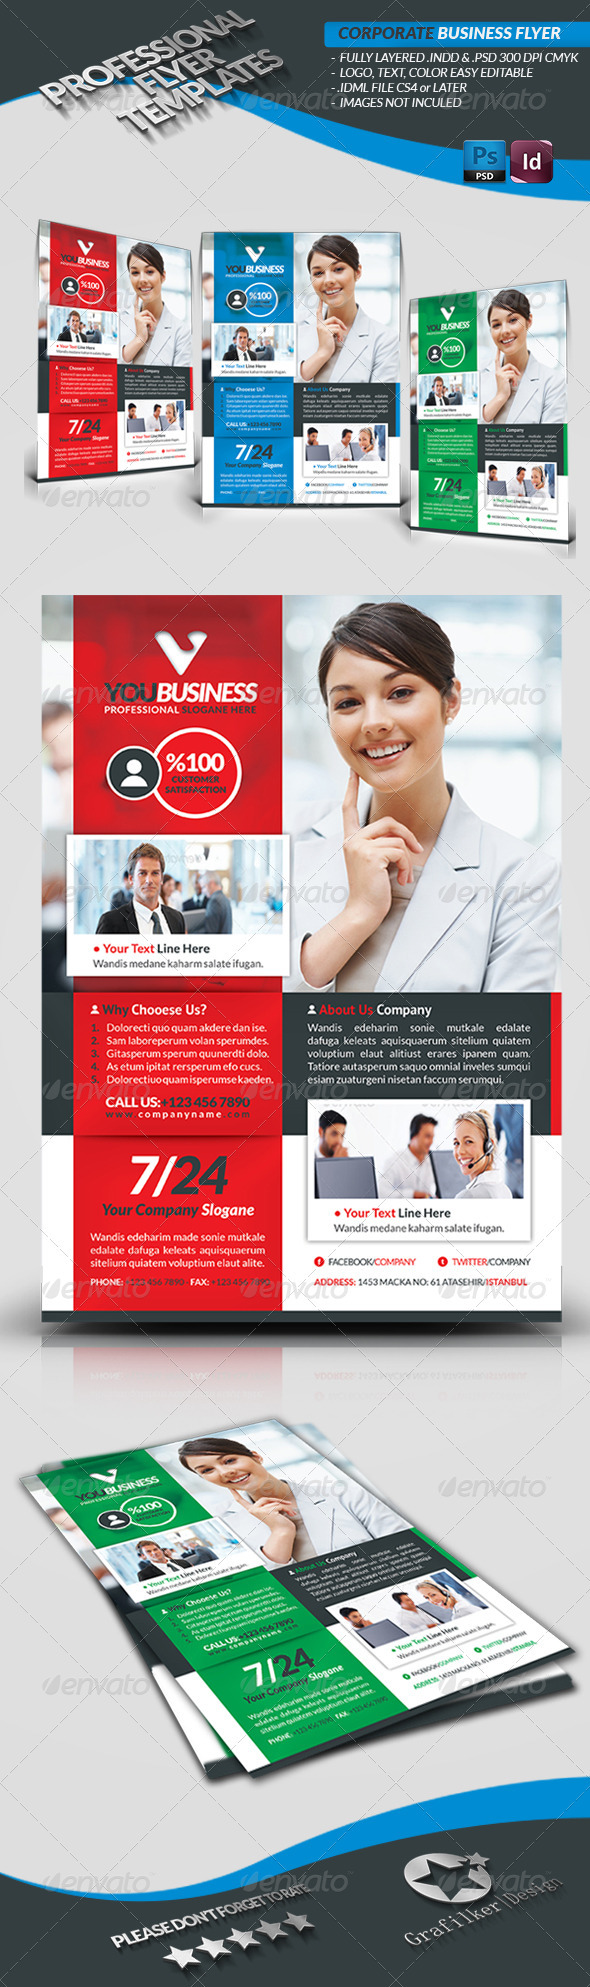 GraphicRiver Corporate Business Flyer 3702347